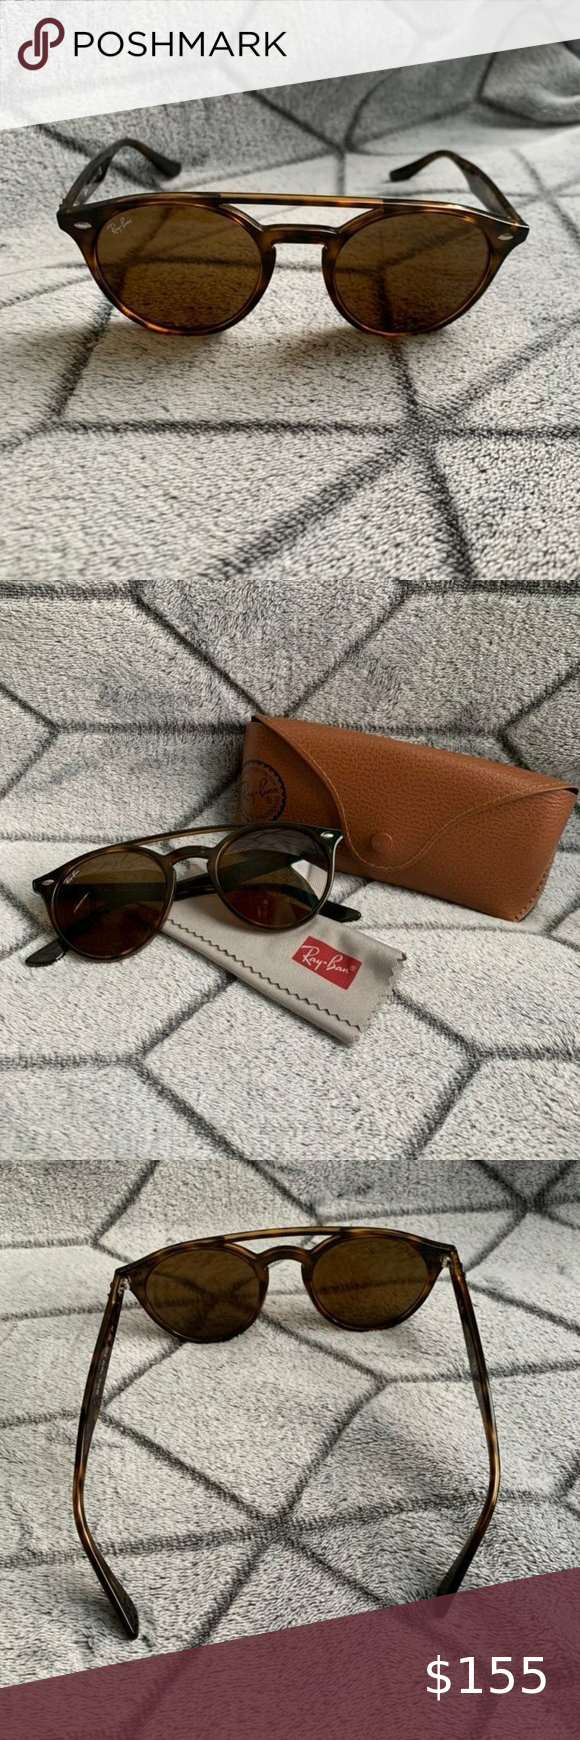 Ray Ban Sunglasses Rb4279 601 71 Brand New The Frame Is Brown Tortoise And The Lenses A Vintage Aviator Sunglasses Fashion Sunglasses Round Metal Sunglasses